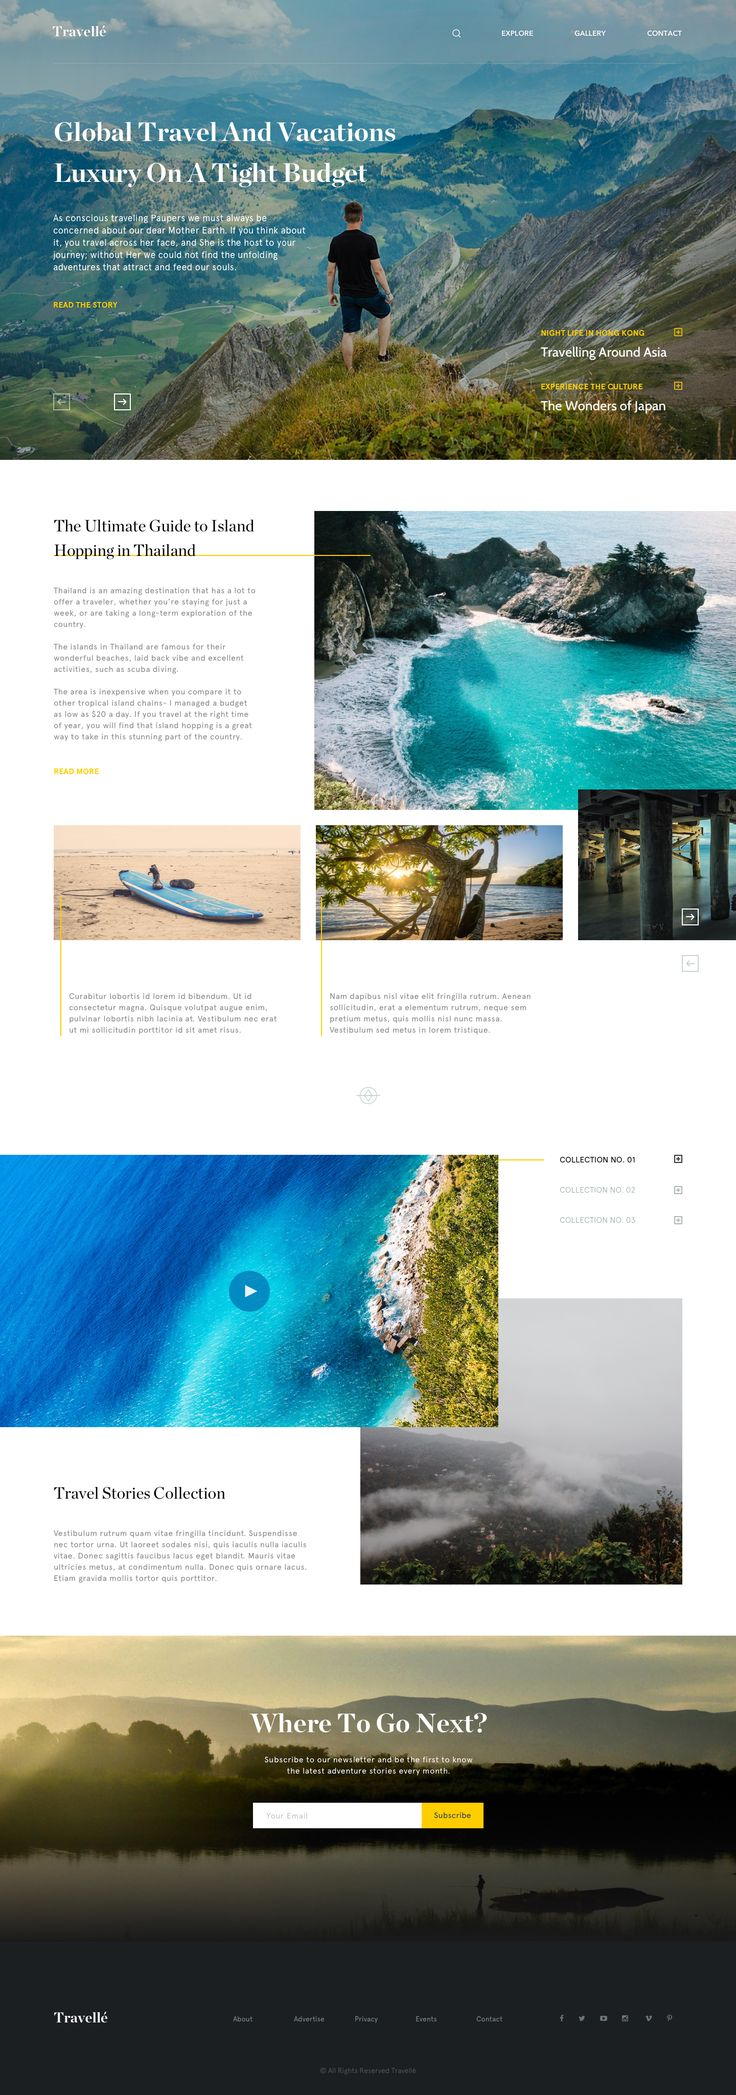 Dribbble - travelle.png by Miramark Diaz